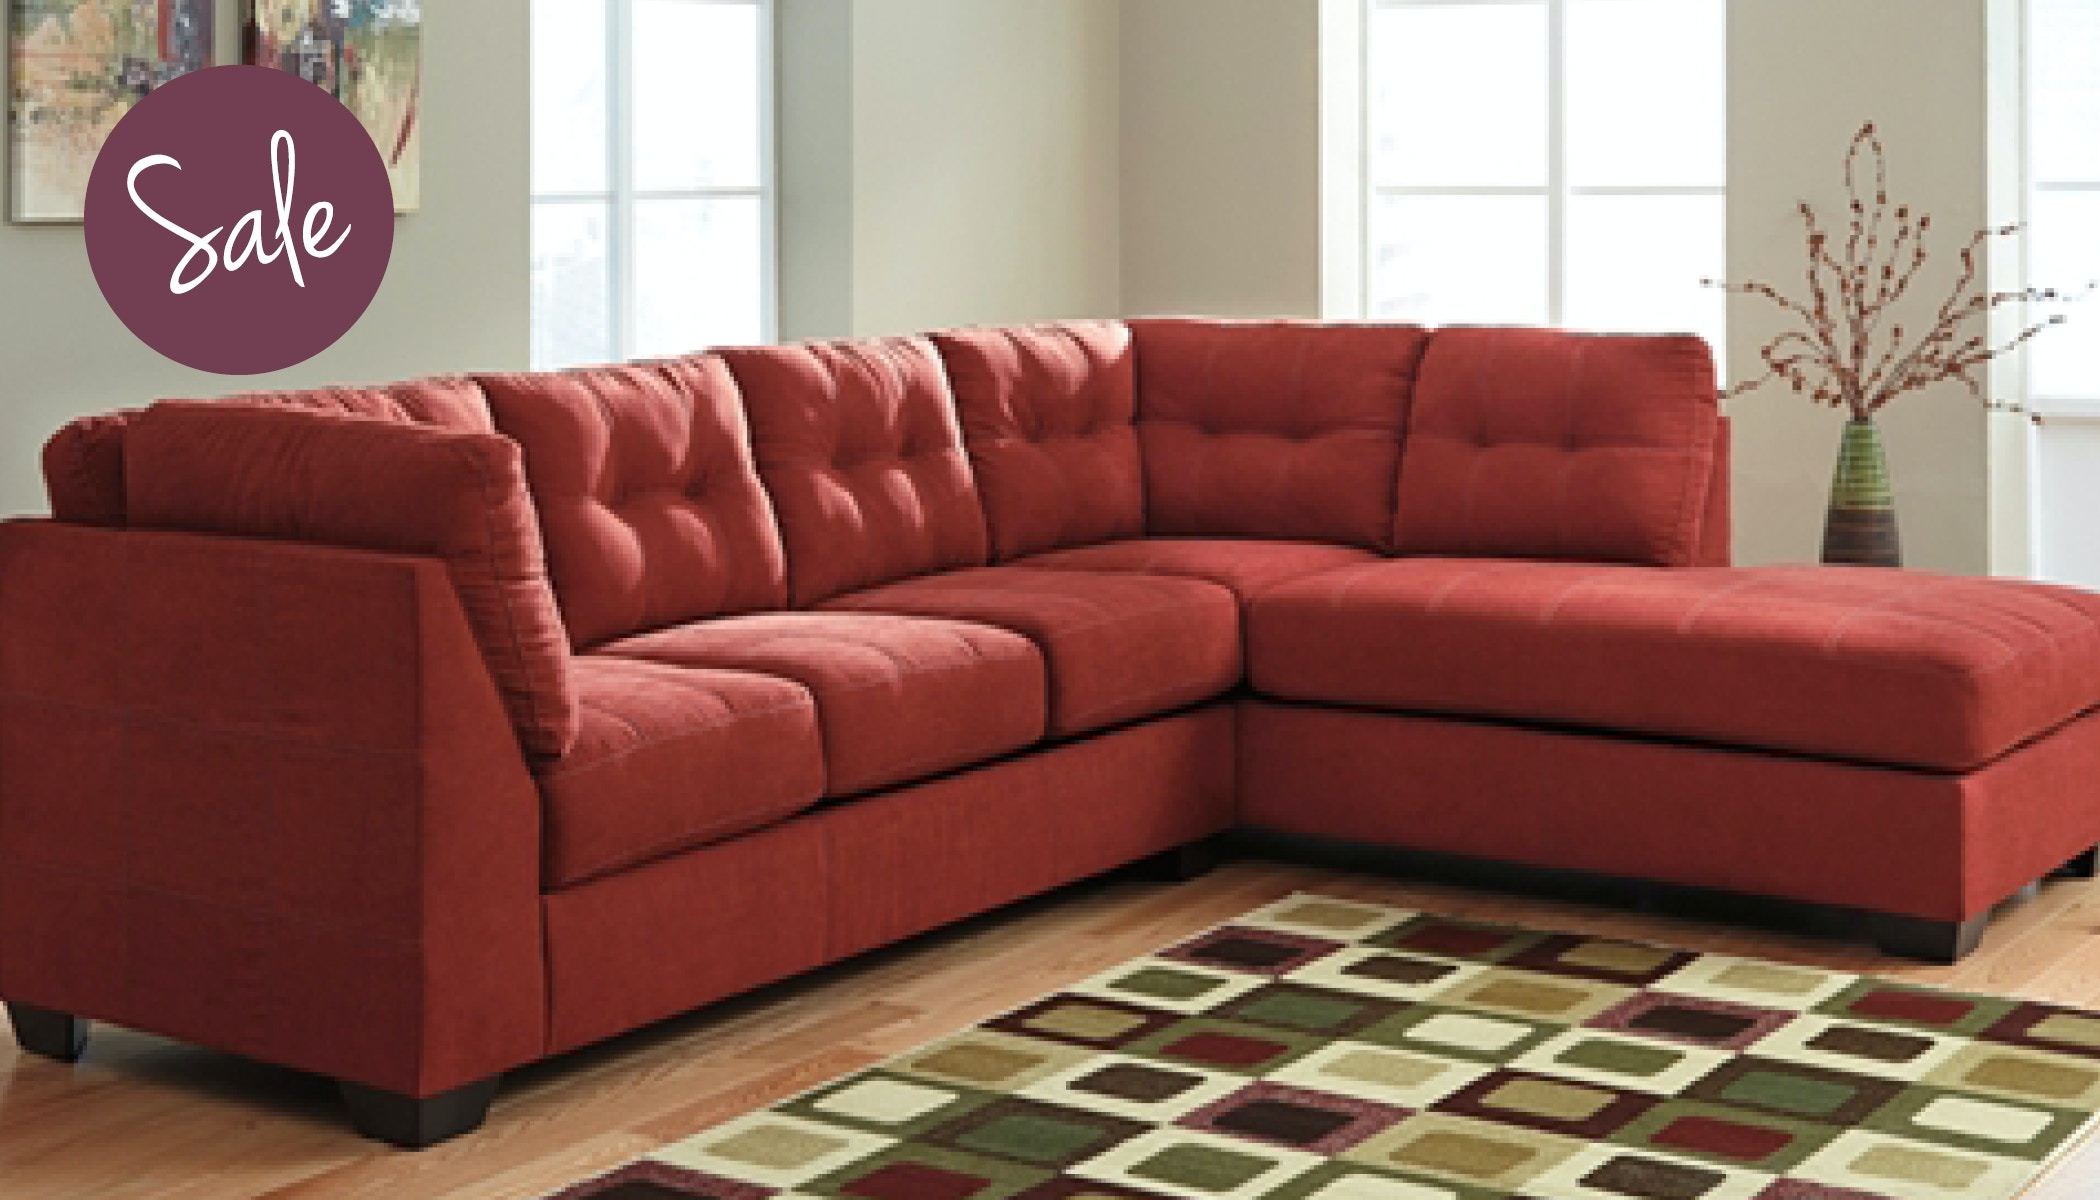 45202/16/67 Maier Sectional P27480 FREE PICKUP